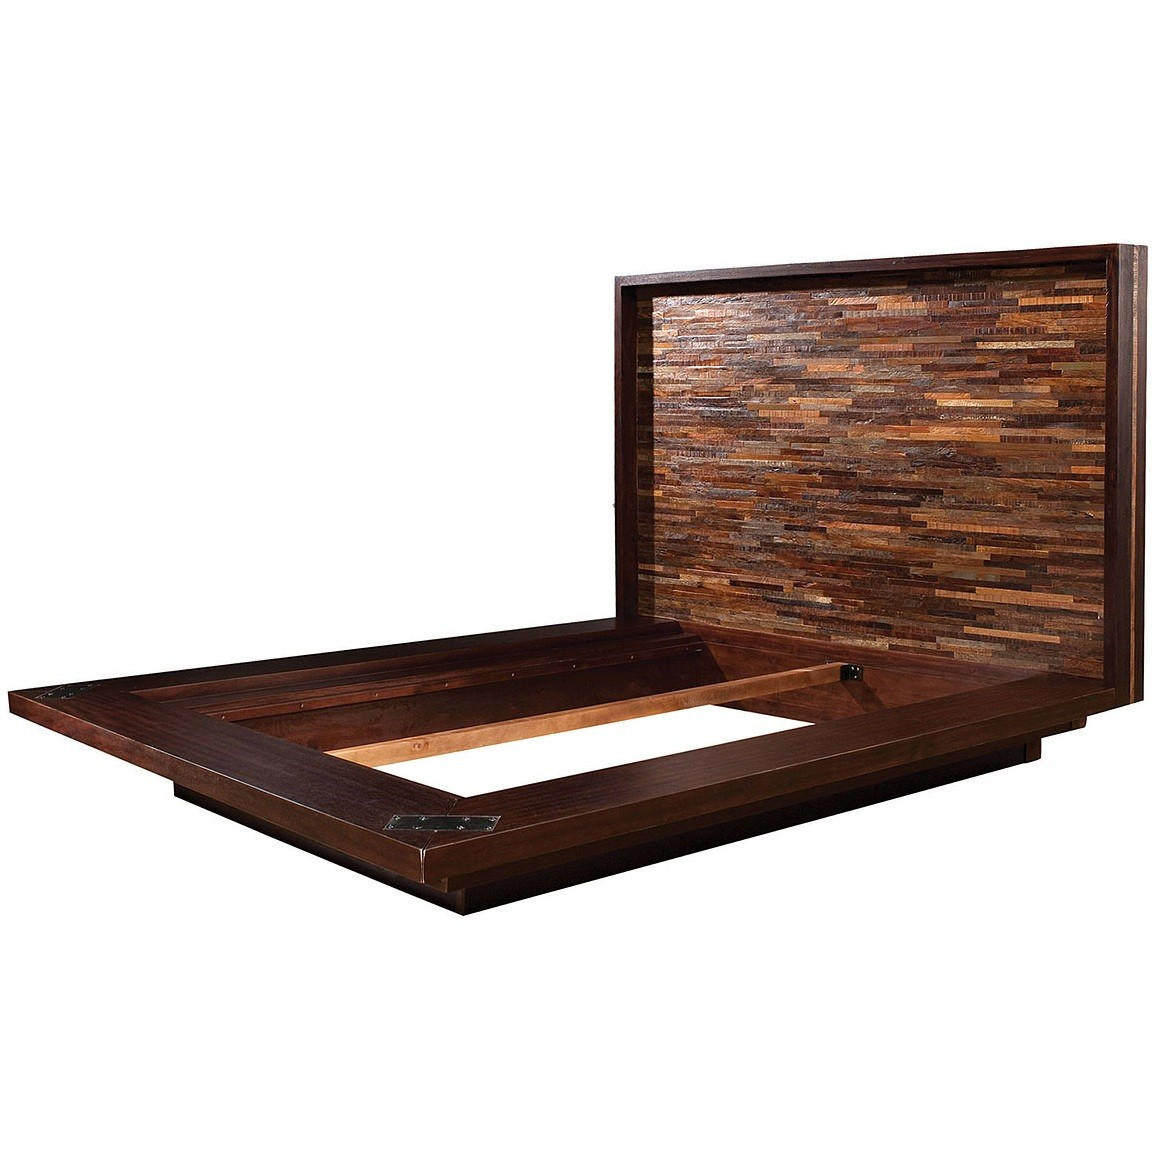 bed_frame_solid_wood_platform_bed_frame_reclaimed_wood_platform_bed